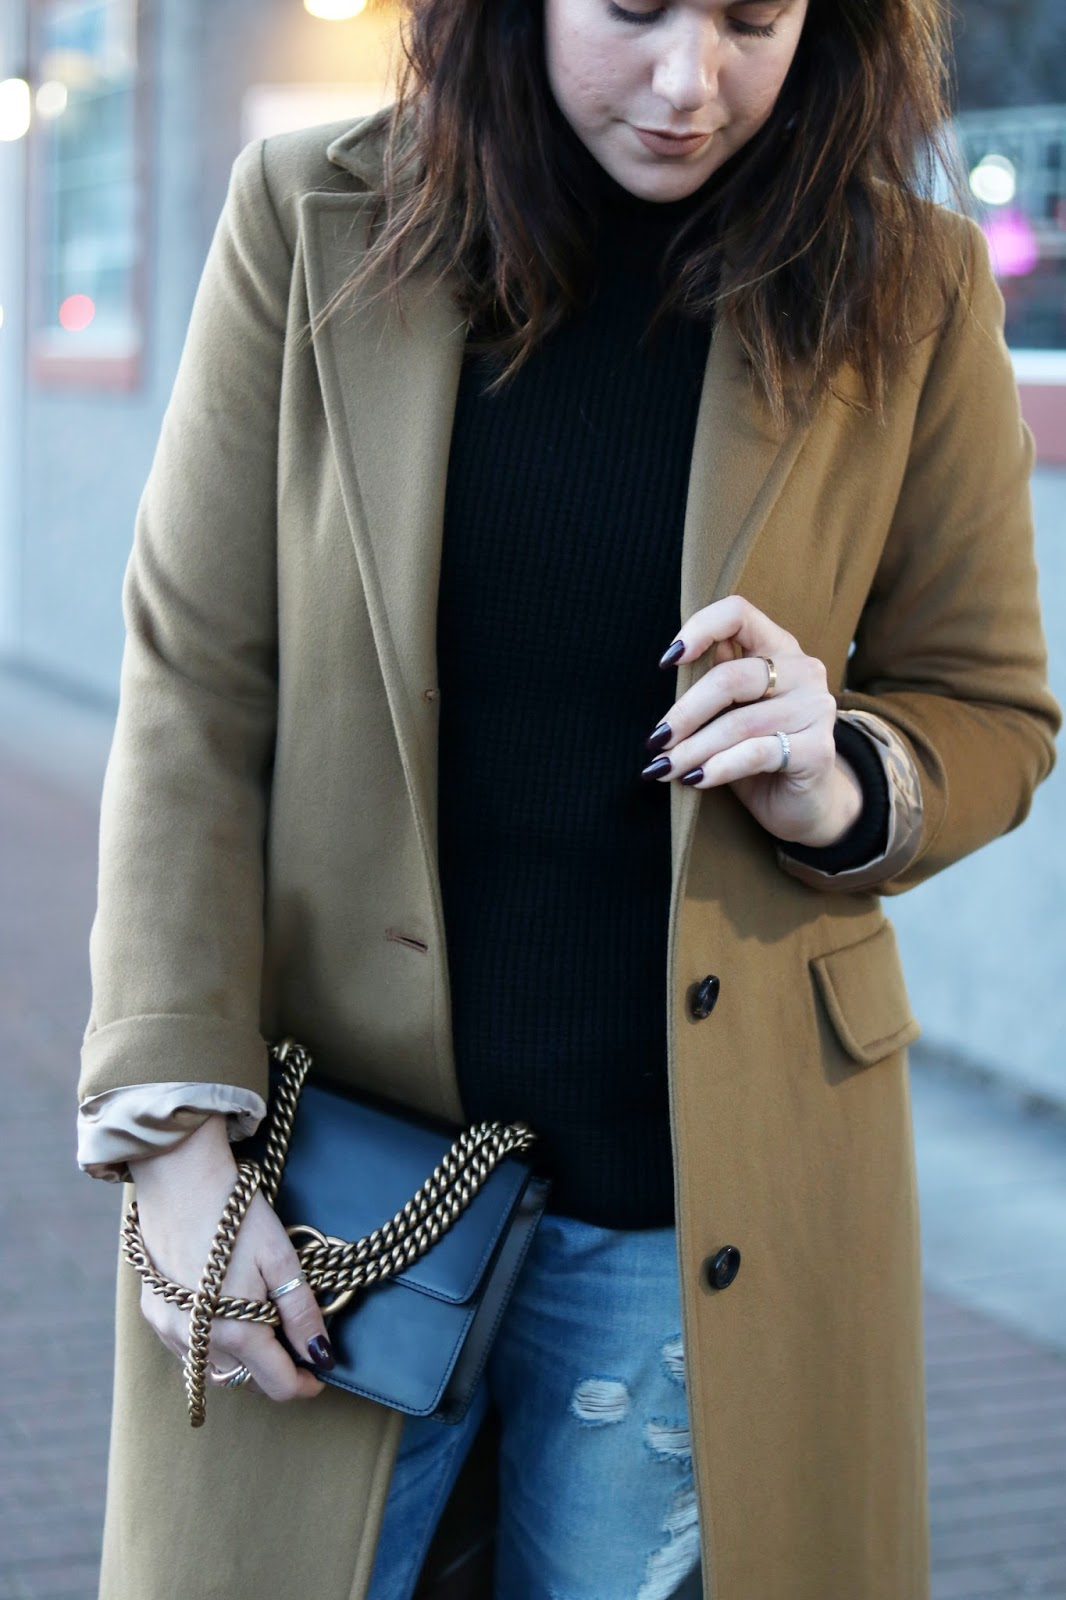 winter weekend outfit camel wool coat boyfriend jeans ankle boots vancouver blogger gucci marmont bag